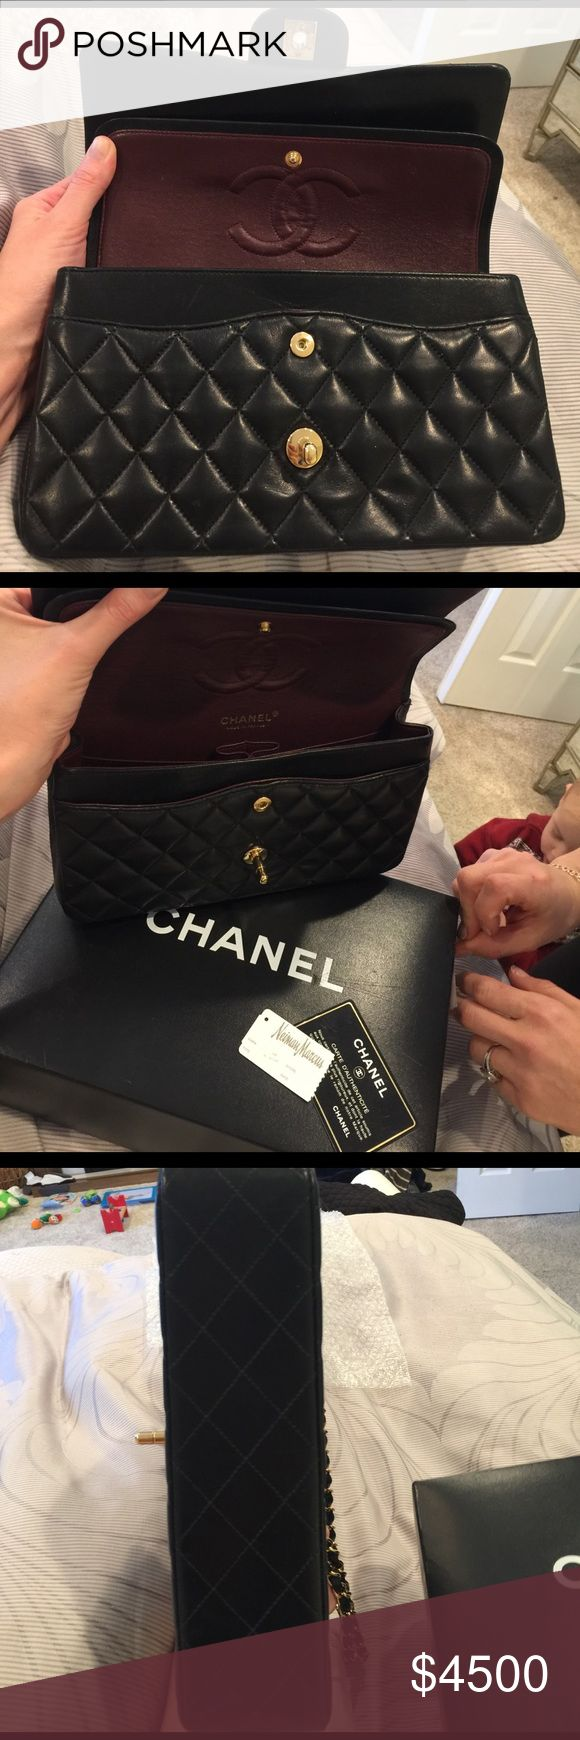 Chanel Purse Chanel Purse; Absolutely pristine condition! Send me your email for more information/pricing! CHANEL Bags Shoulder Bags